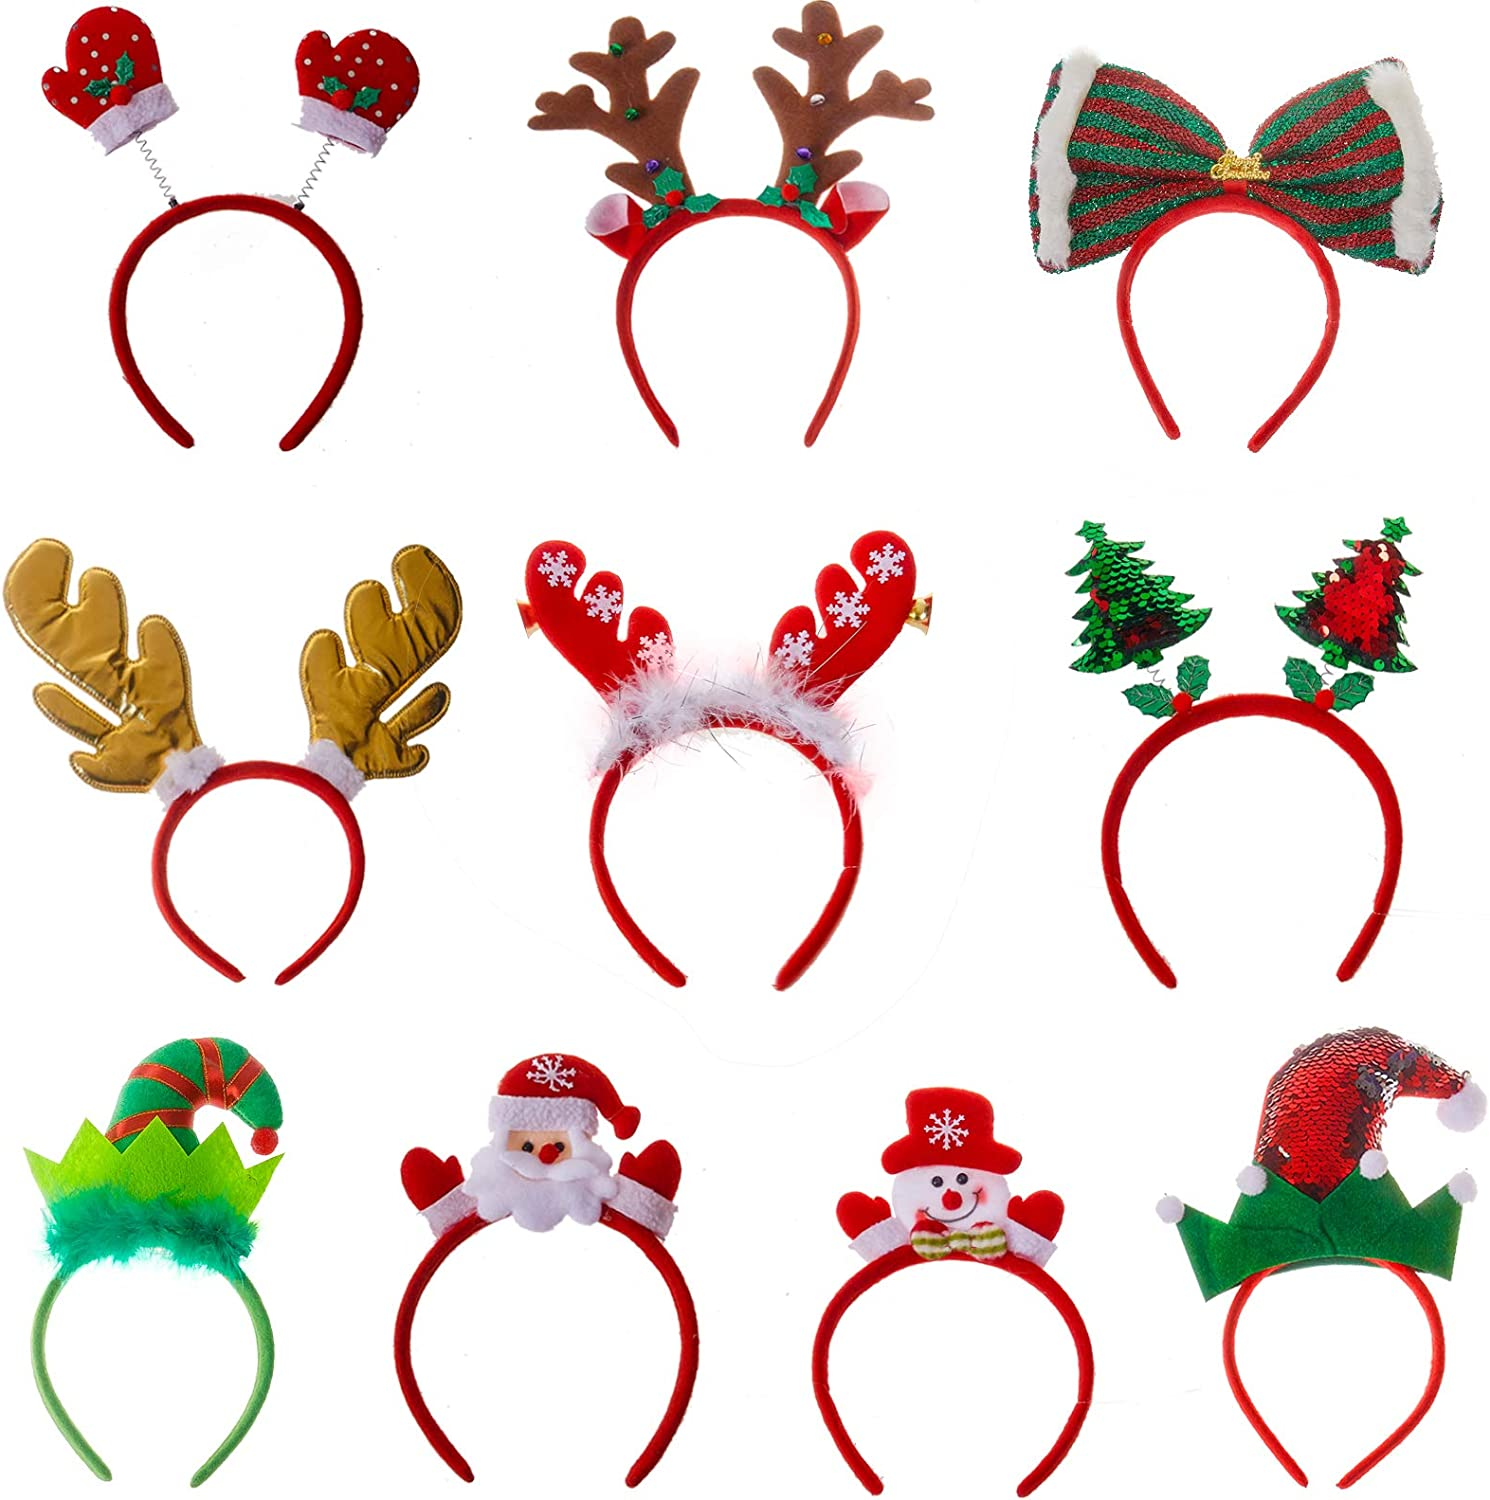 Holiday Headwear for Kids Adults Accessory for Party Favors Photo Props Assorted Designs Reindeer Antlers Elf Hat Santa Claus Bulk 10 Pack of Christmas Headband Size Fits All Ages